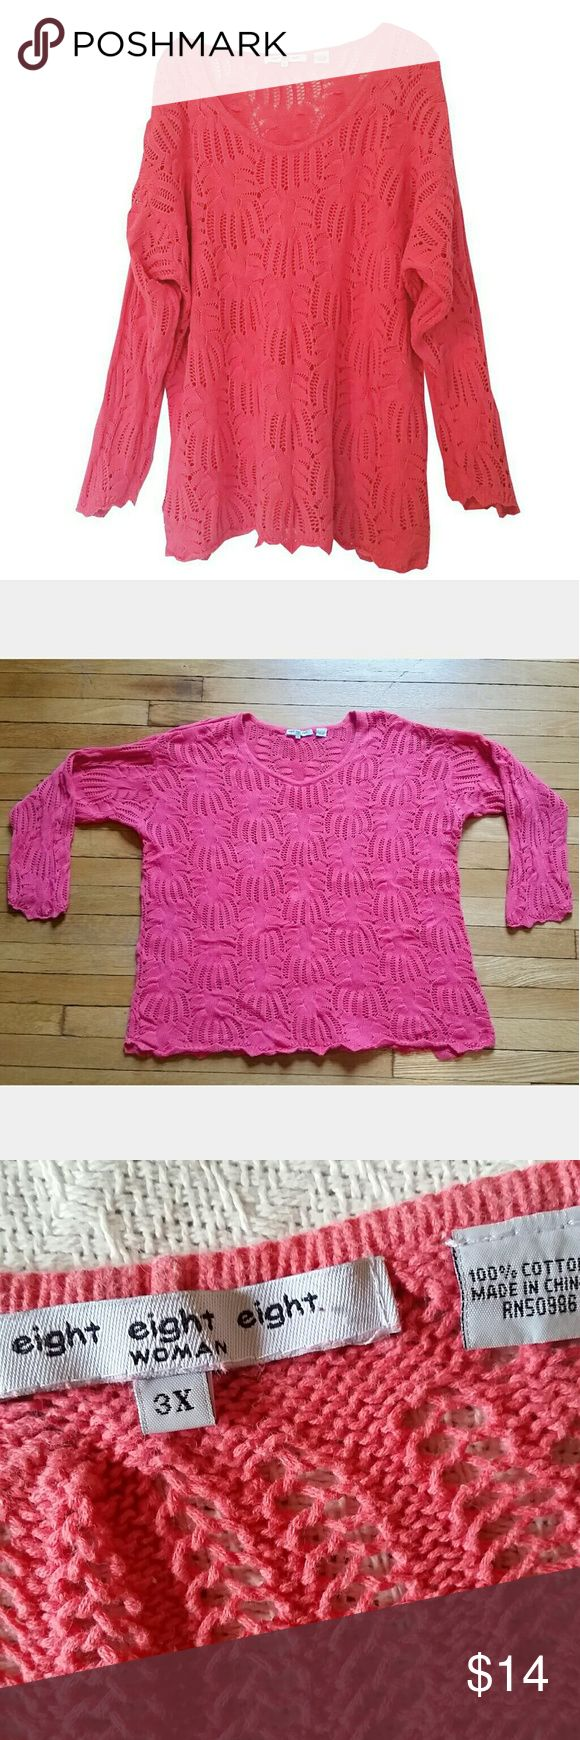 Open Weave Salmon Sweater Open Weave sweater, salmon color. Perfect for spring/autumn, long sleeve yet airy. No pulls/rips/stains/signs of wear. eight eight eight Sweaters Crew & Scoop Necks